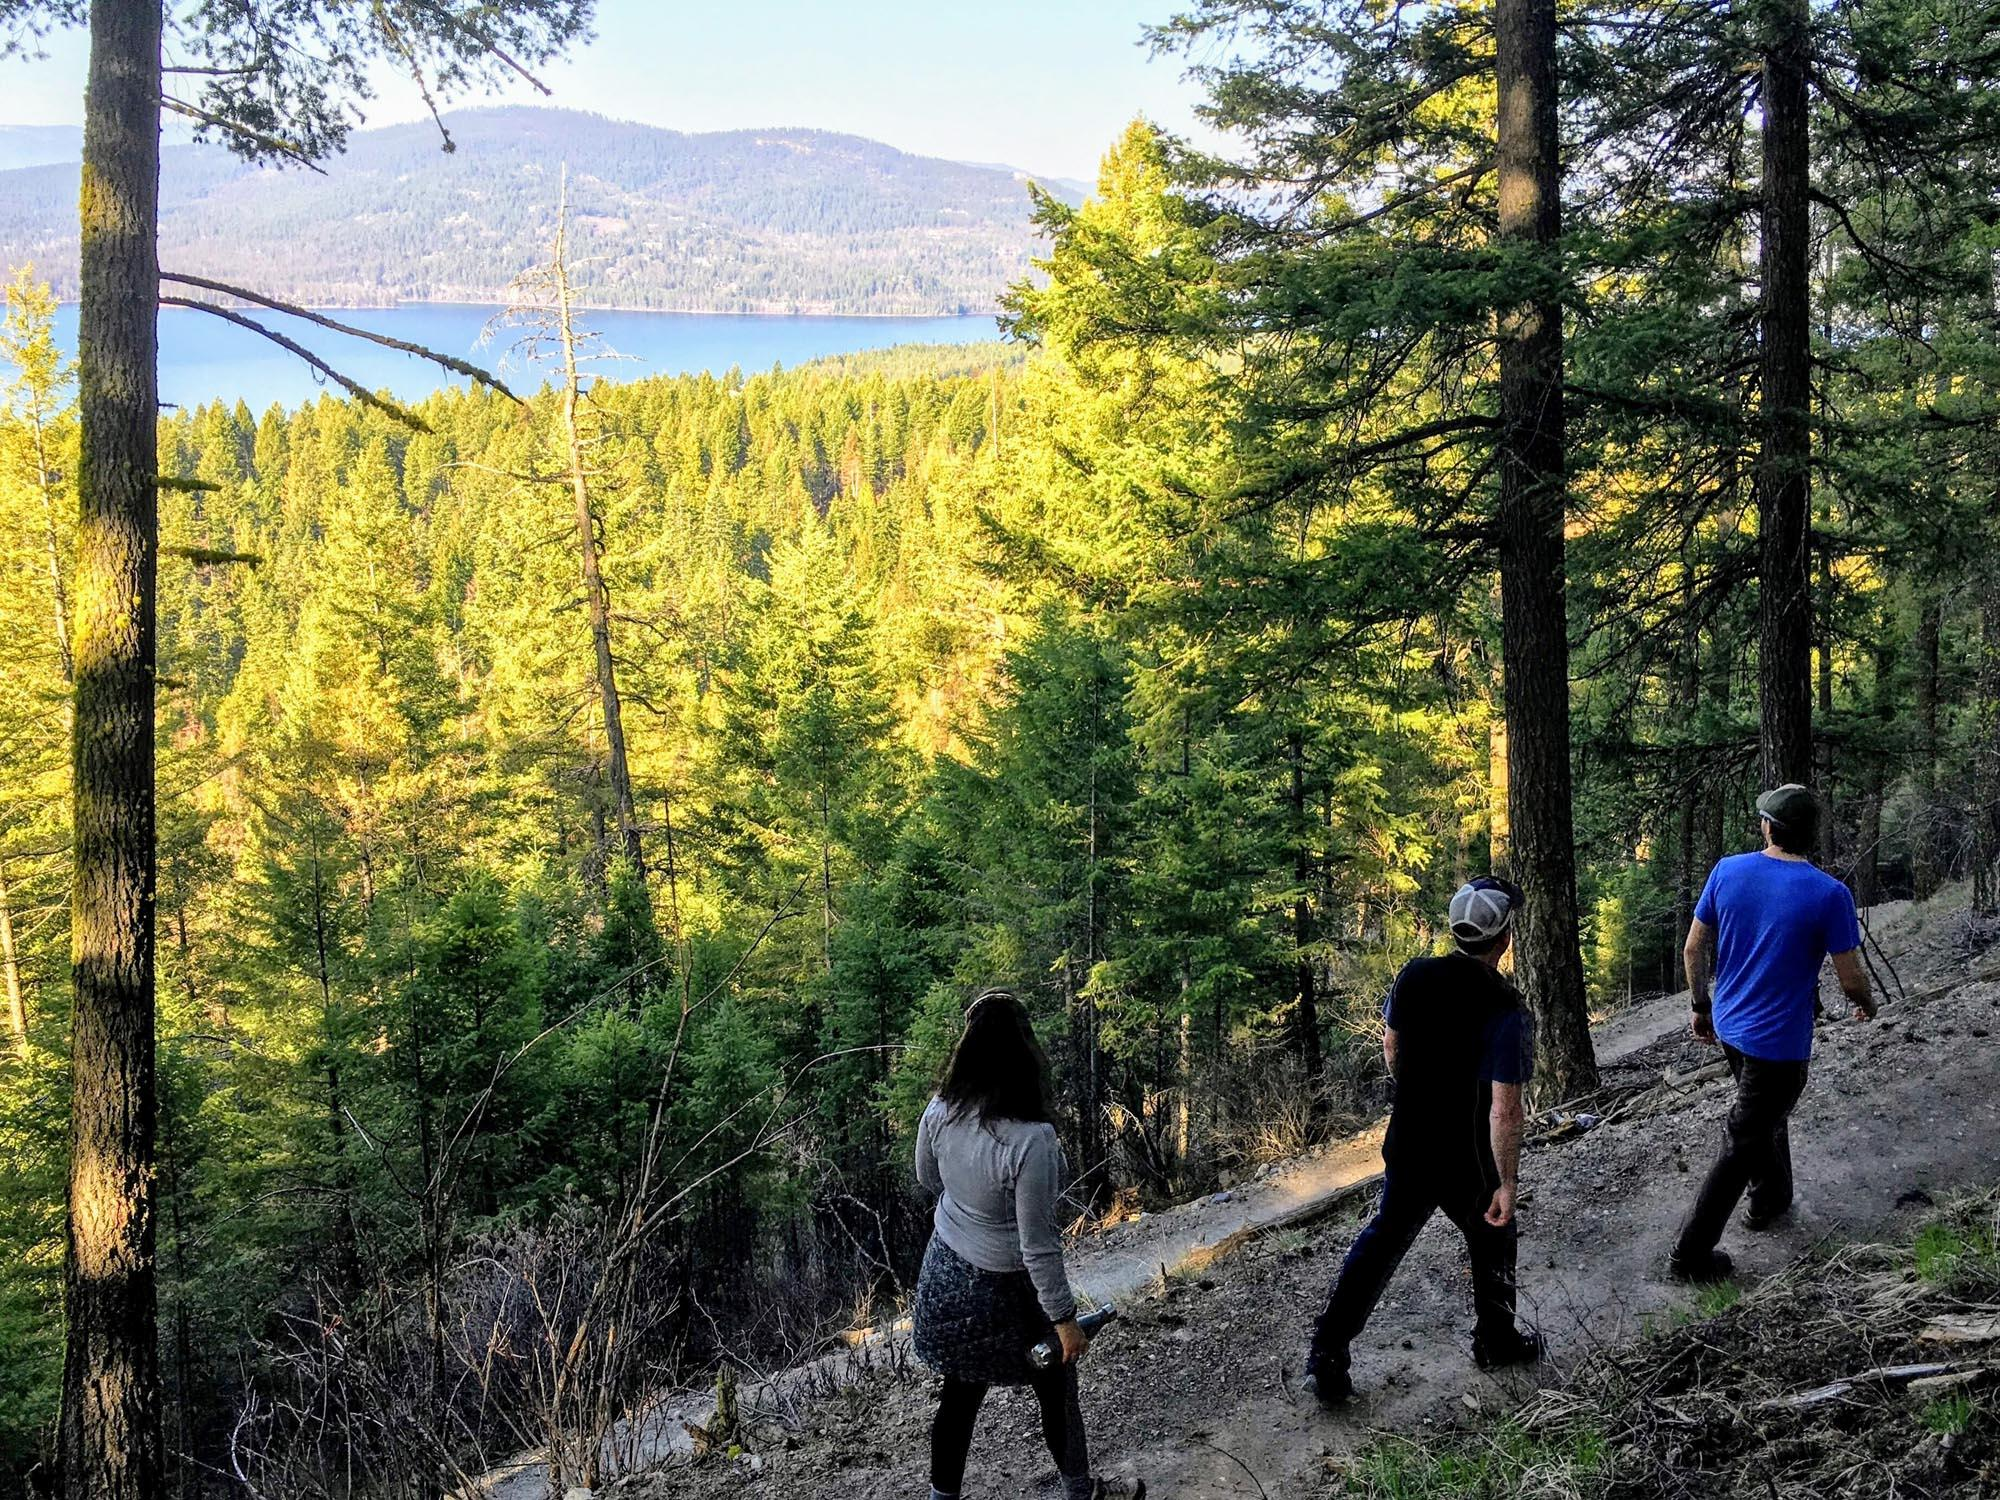 Hiking in Haskill Basin on the Whitefish Trail